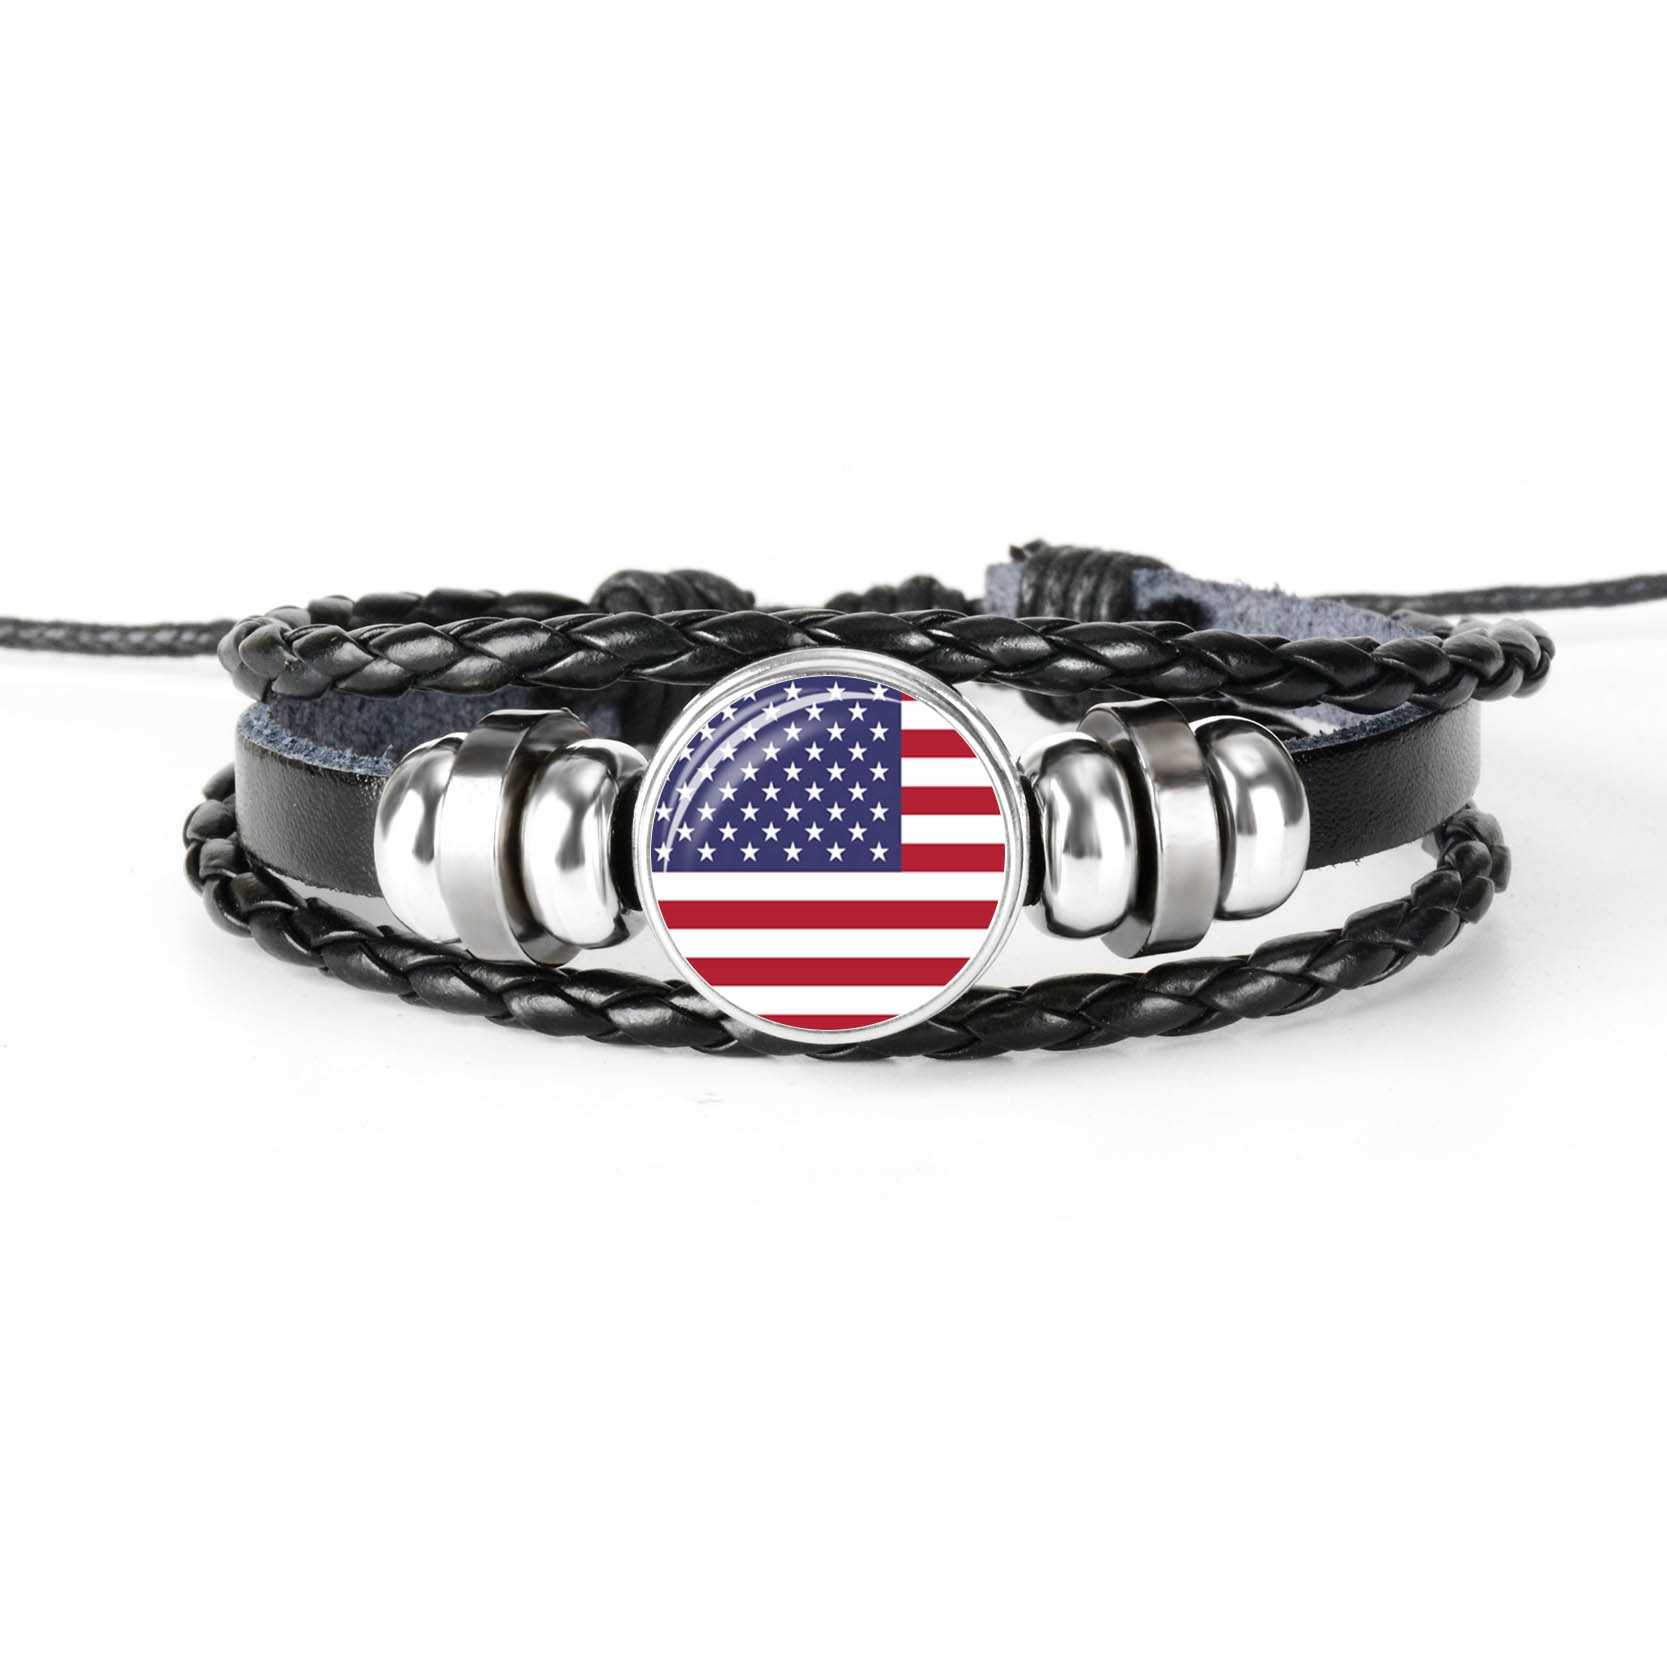 America Haiti Mexico National Flag Men's Leather Bracelet Glass Cabochon Charm Multilayer Braided Women